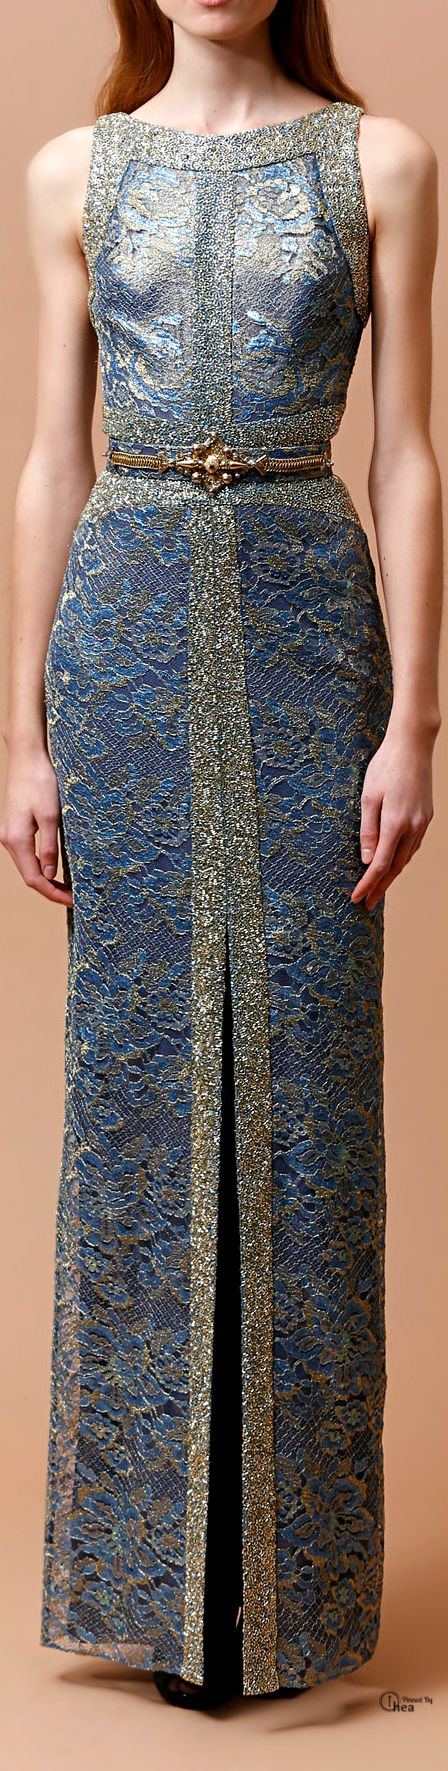 "Badgley Mischka ● Pre-Fall 2014. The original comment is, ""Reminiscent of a caftan!"" I think it looks more like armor."